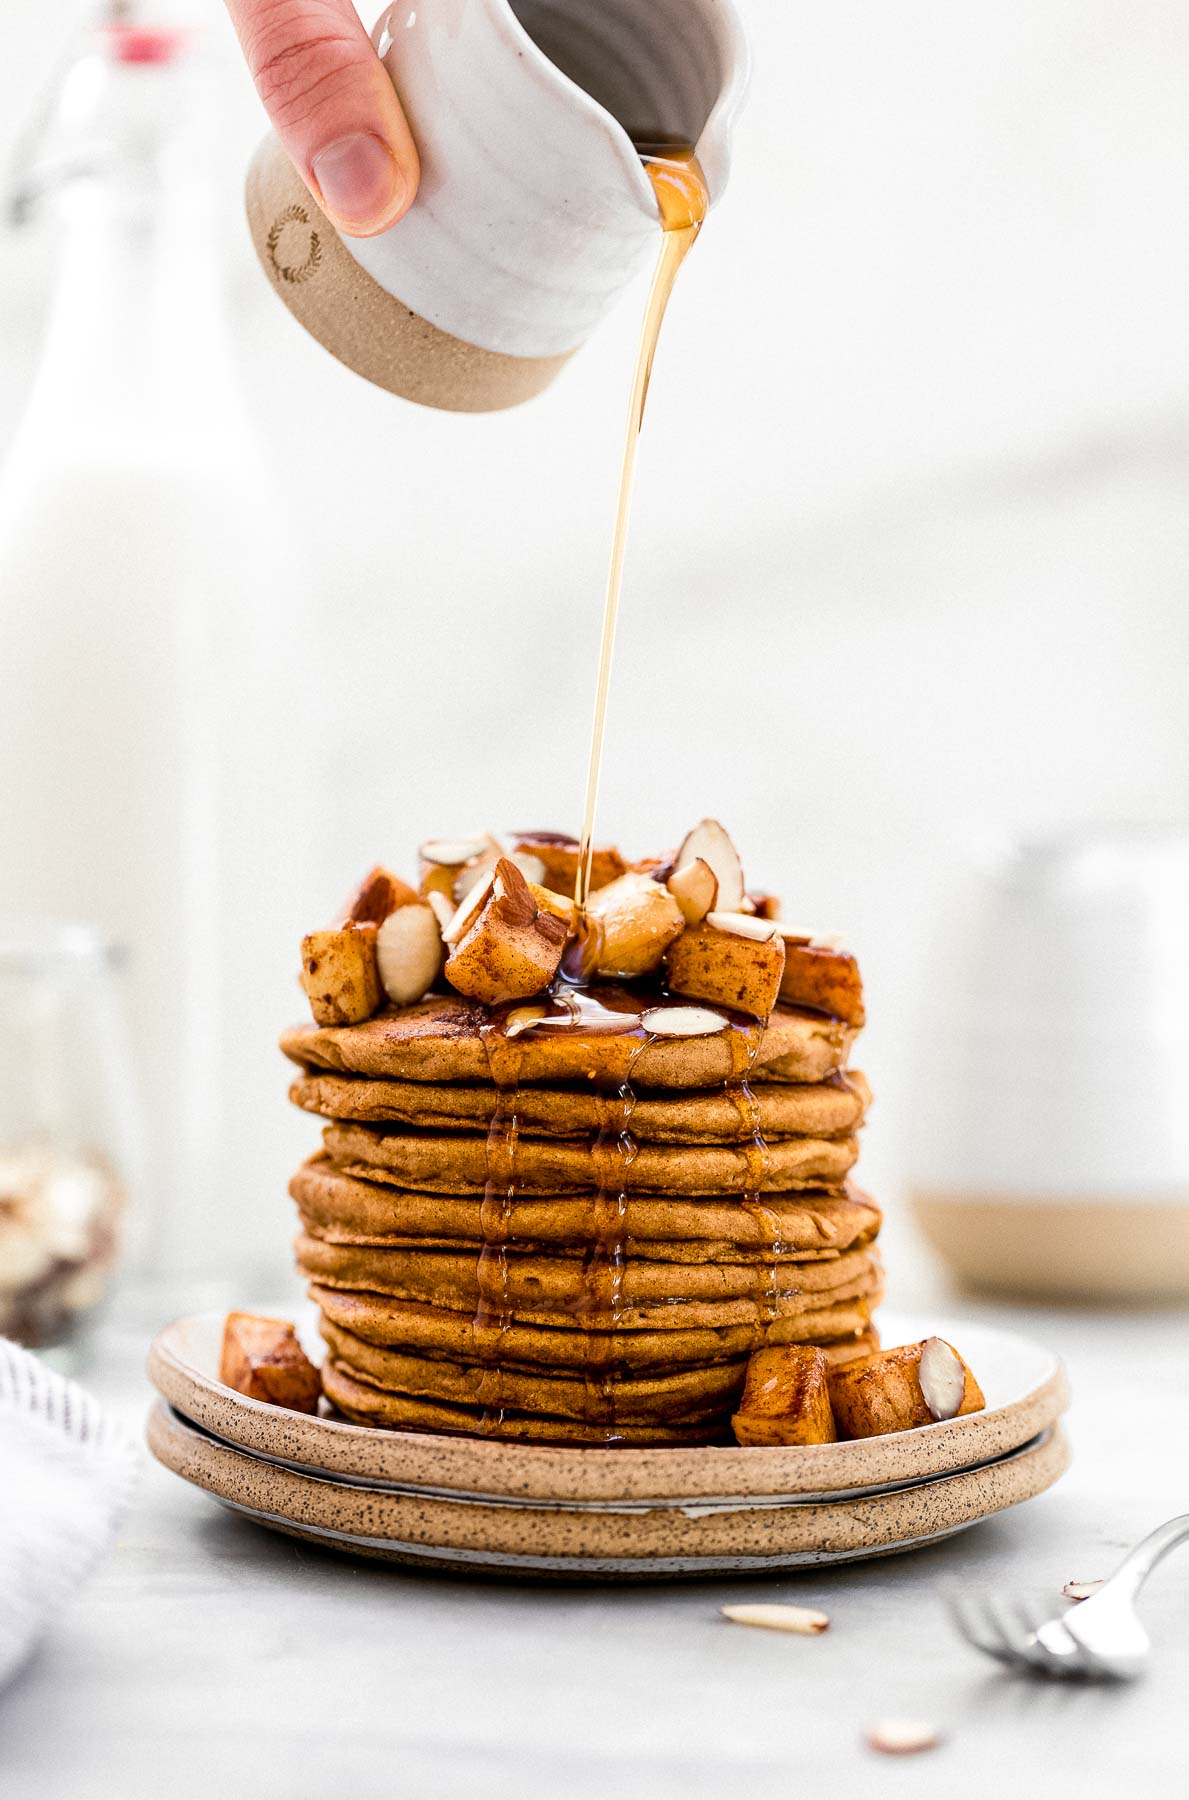 Tall stack of vegan sweet potato pancakes with apples on top.